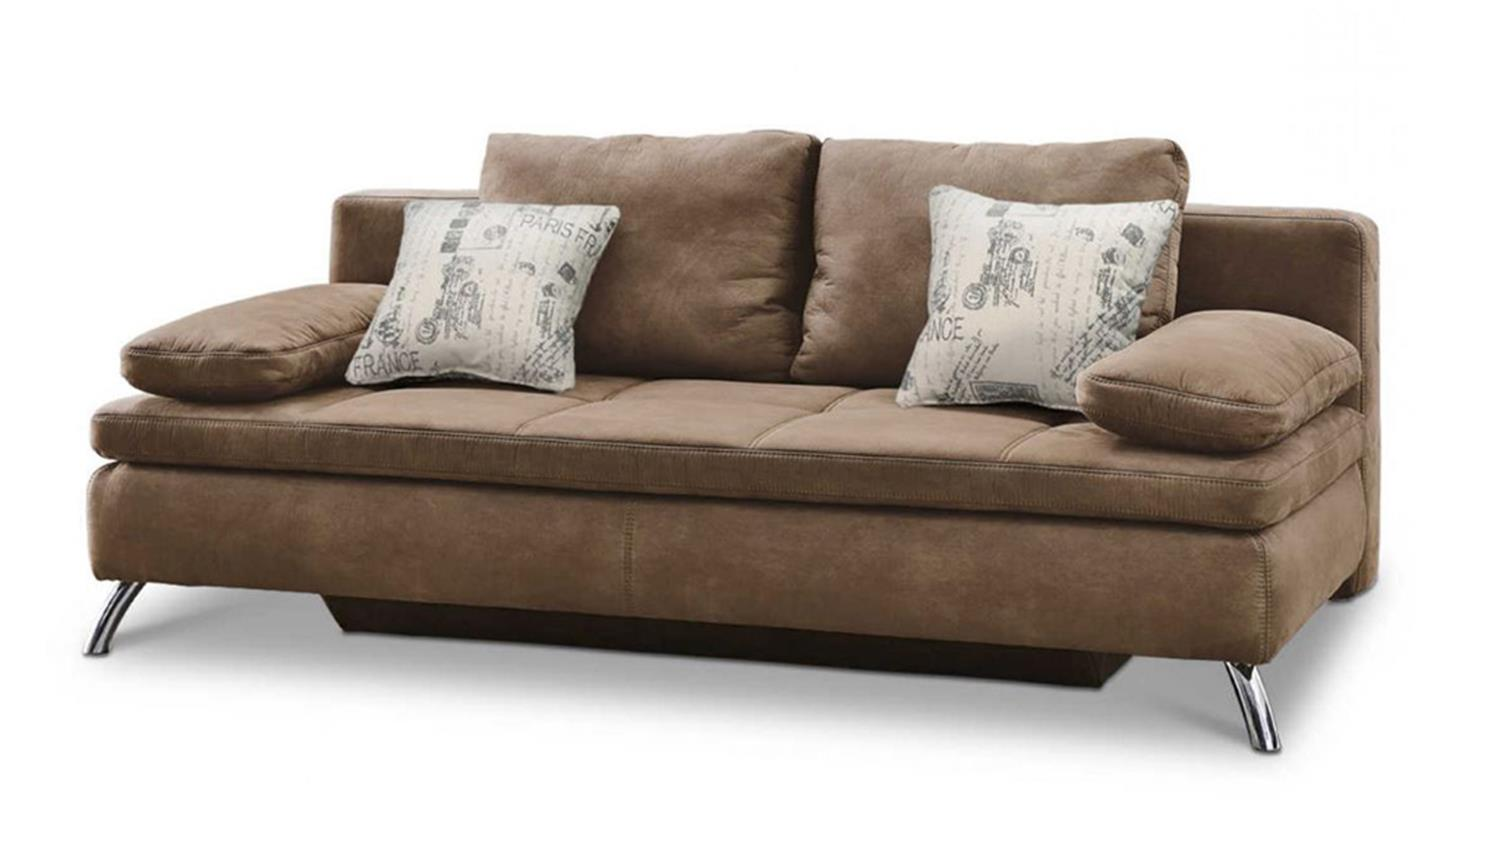 schlafsofa jamaika sofa in cognac braun. Black Bedroom Furniture Sets. Home Design Ideas